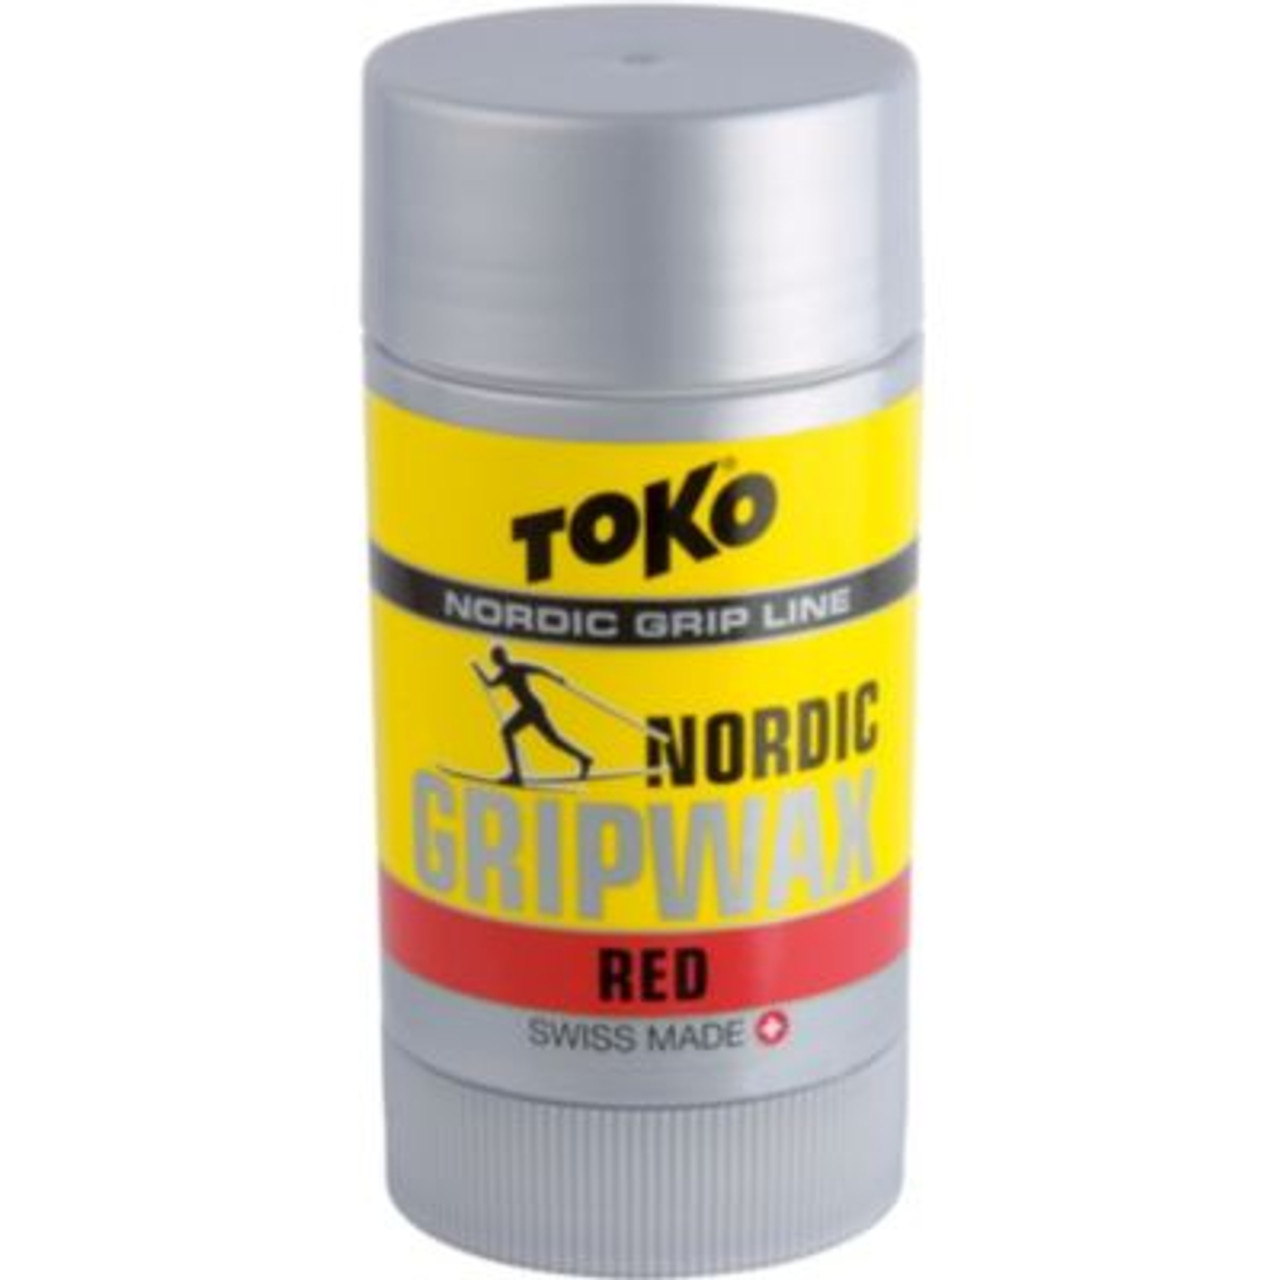 Toko Nordic Grip Wax Red - 27g